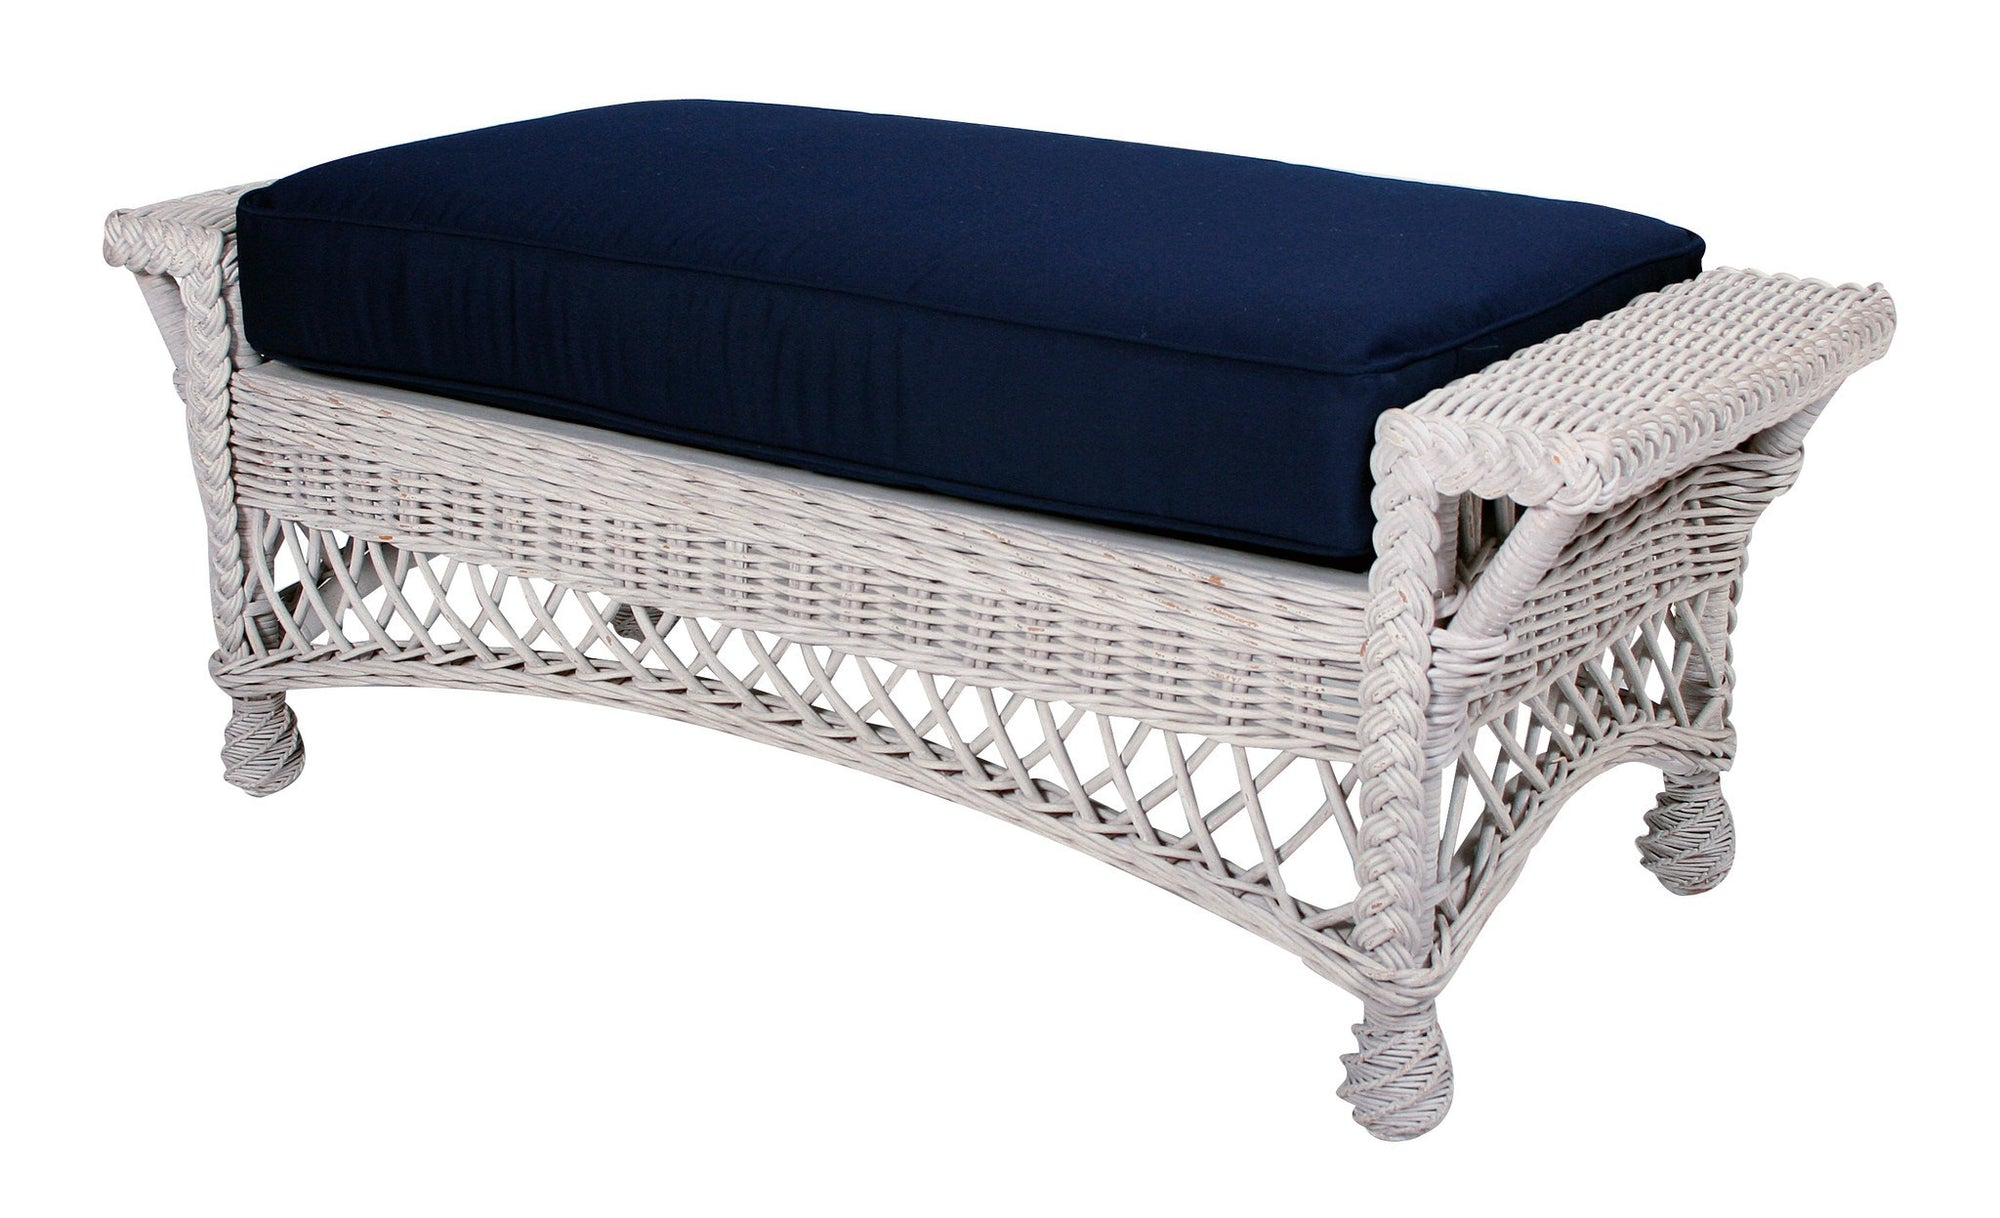 Designer Wicker & Rattan By Tribor Rockport Ottoman and a Half by Designer Wicker from Tribor Ottoman - Rattan Imports